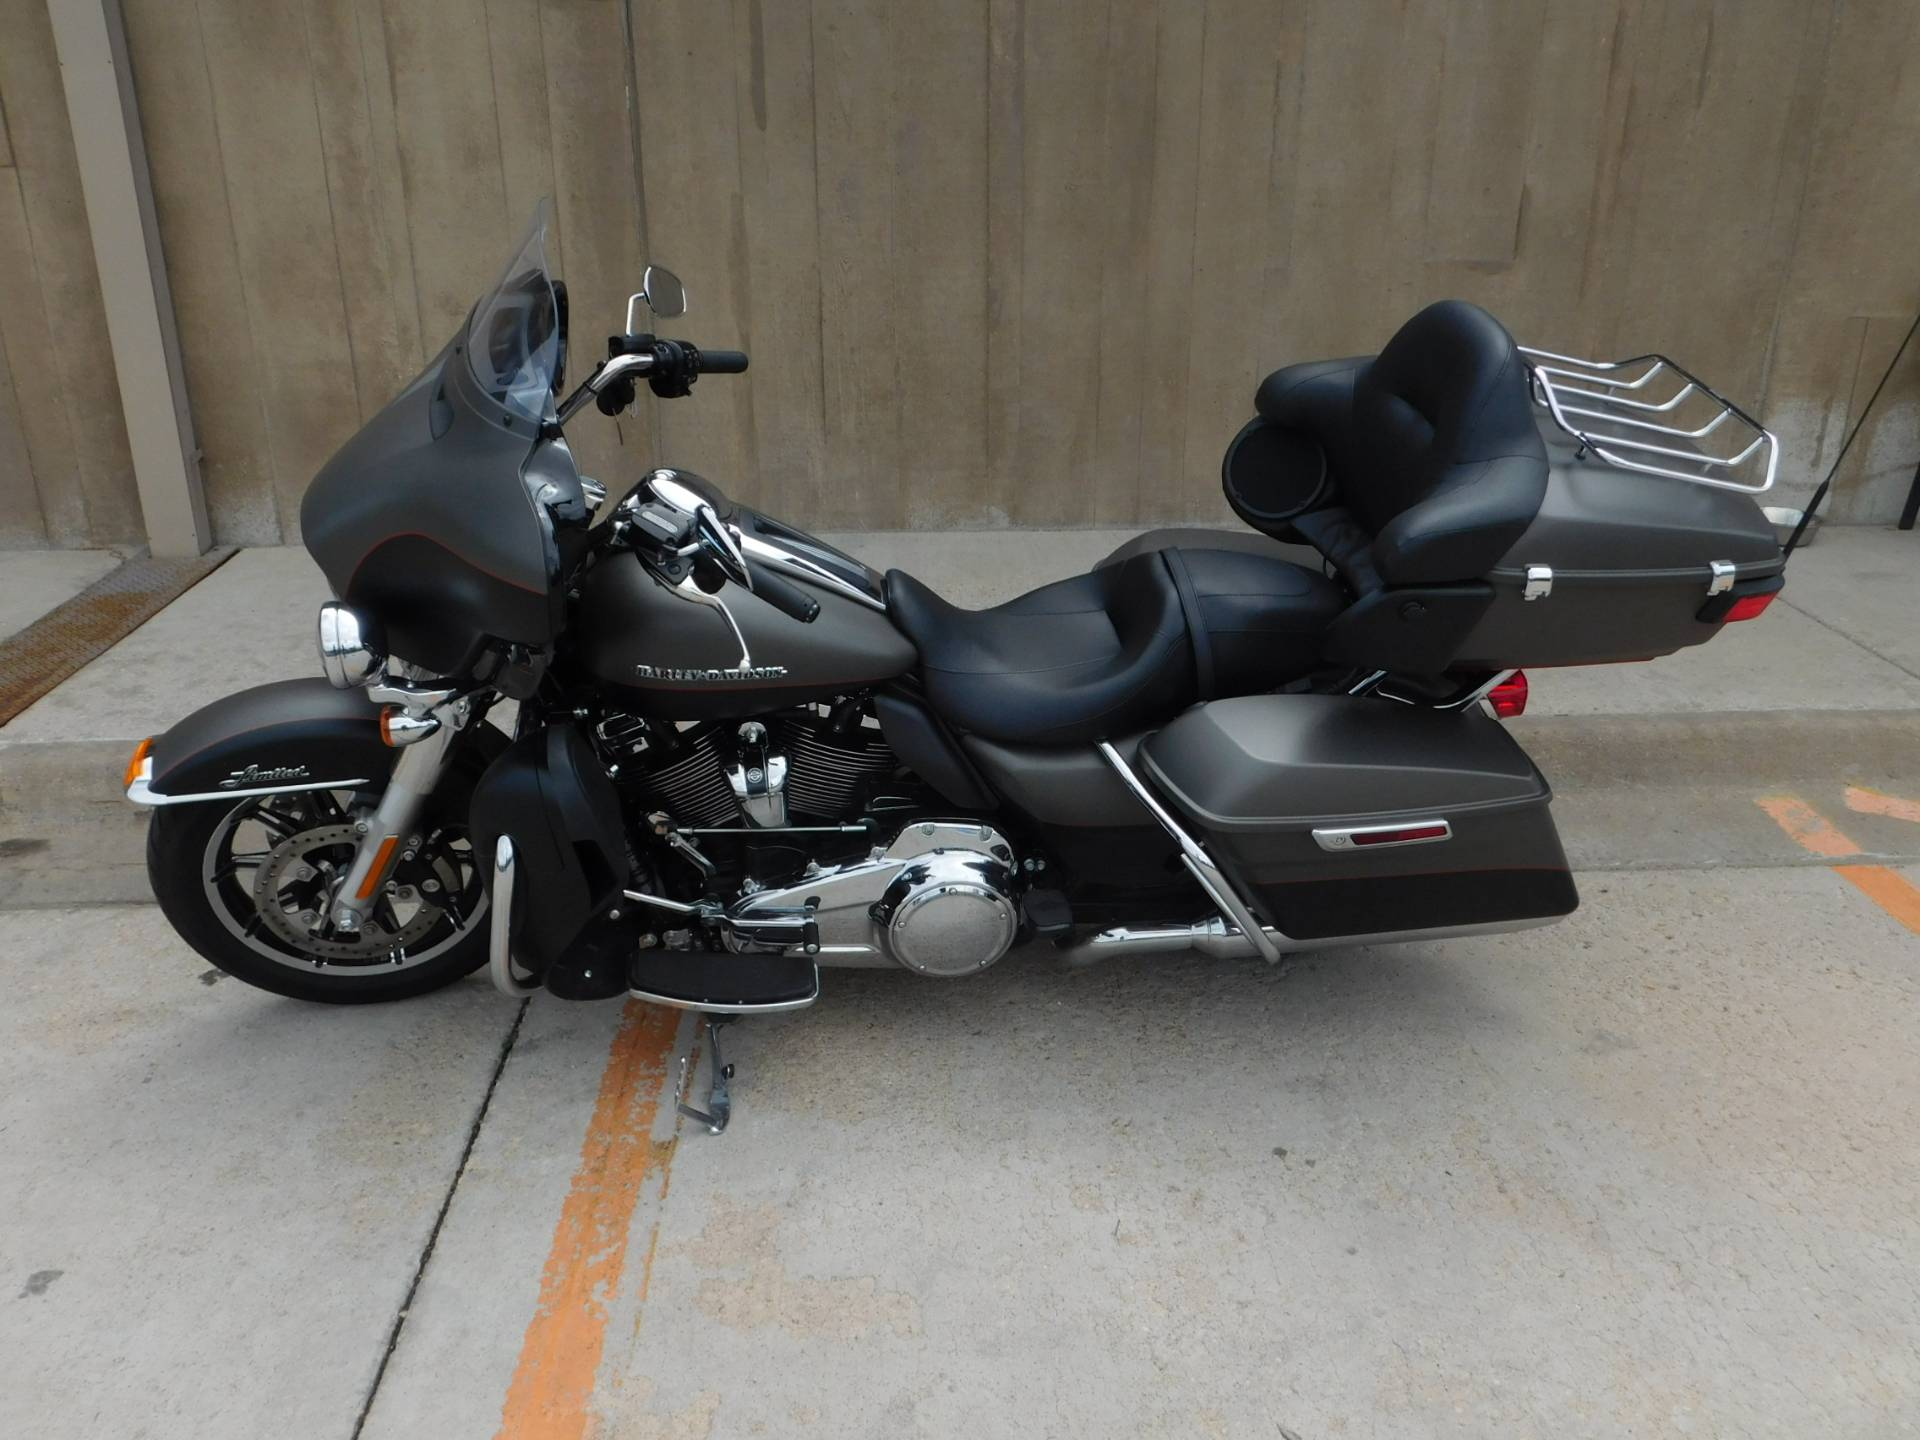 2018 Harley-Davidson Ultra Limited Low in Colorado Springs, Colorado - Photo 2